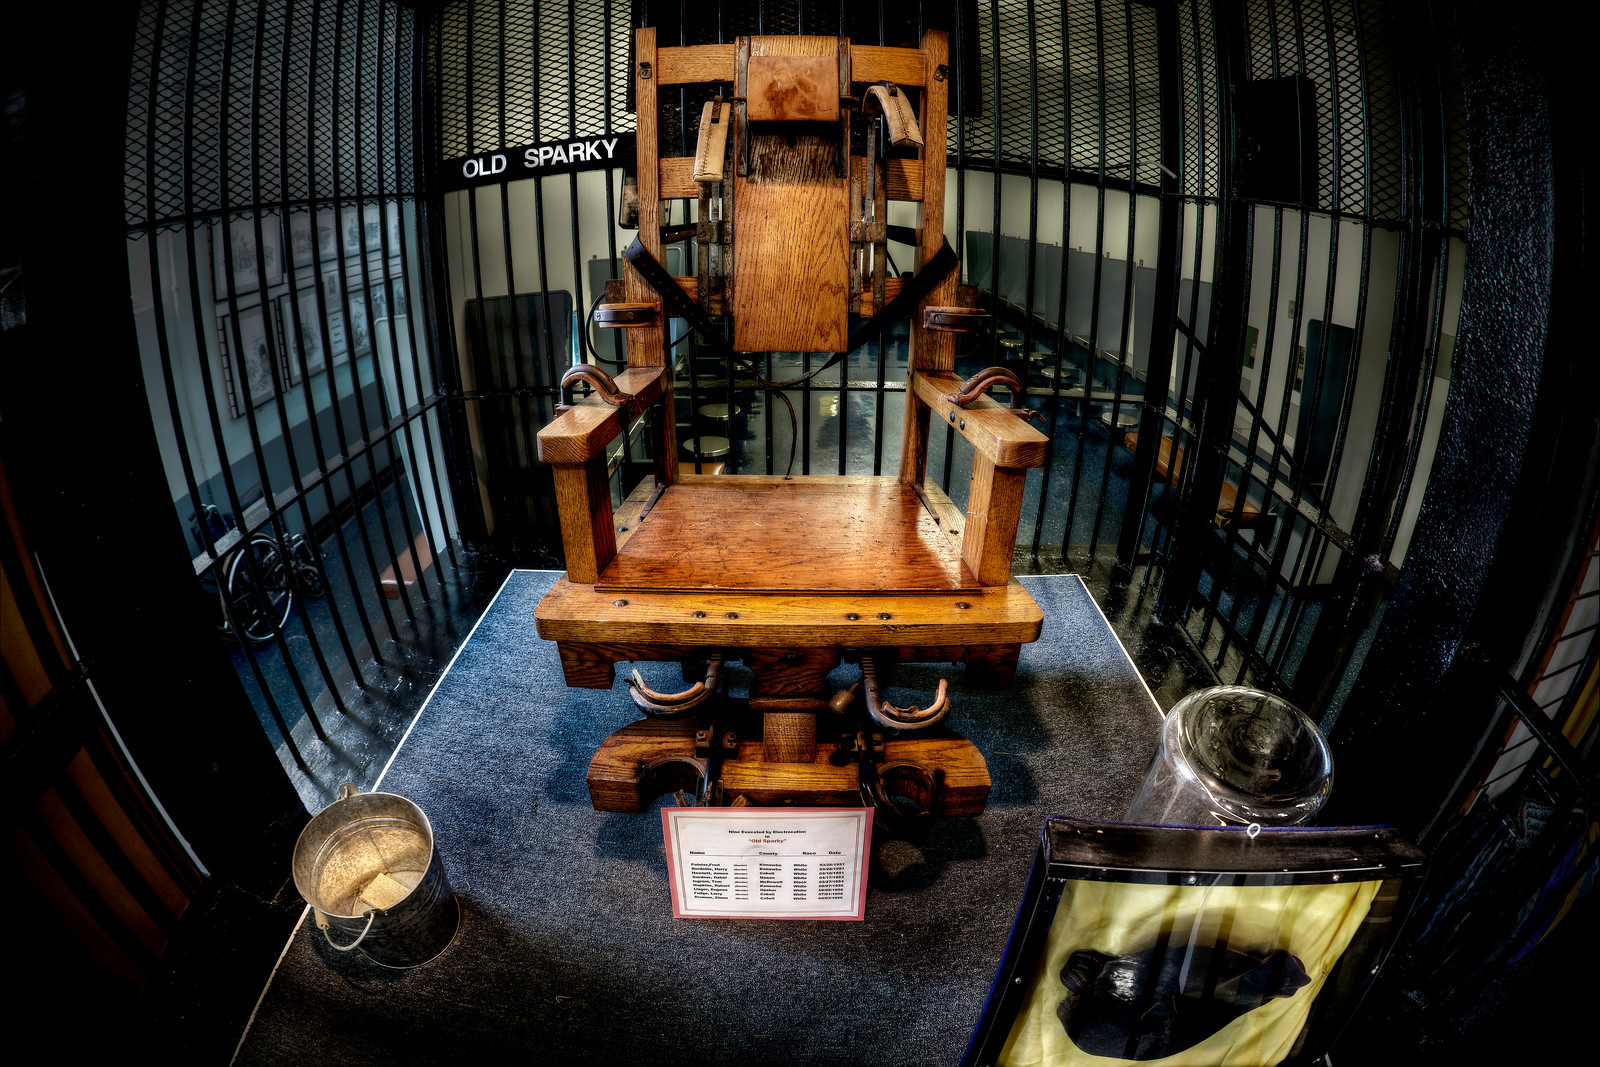 West Virginia Penitentiary Electric Chair